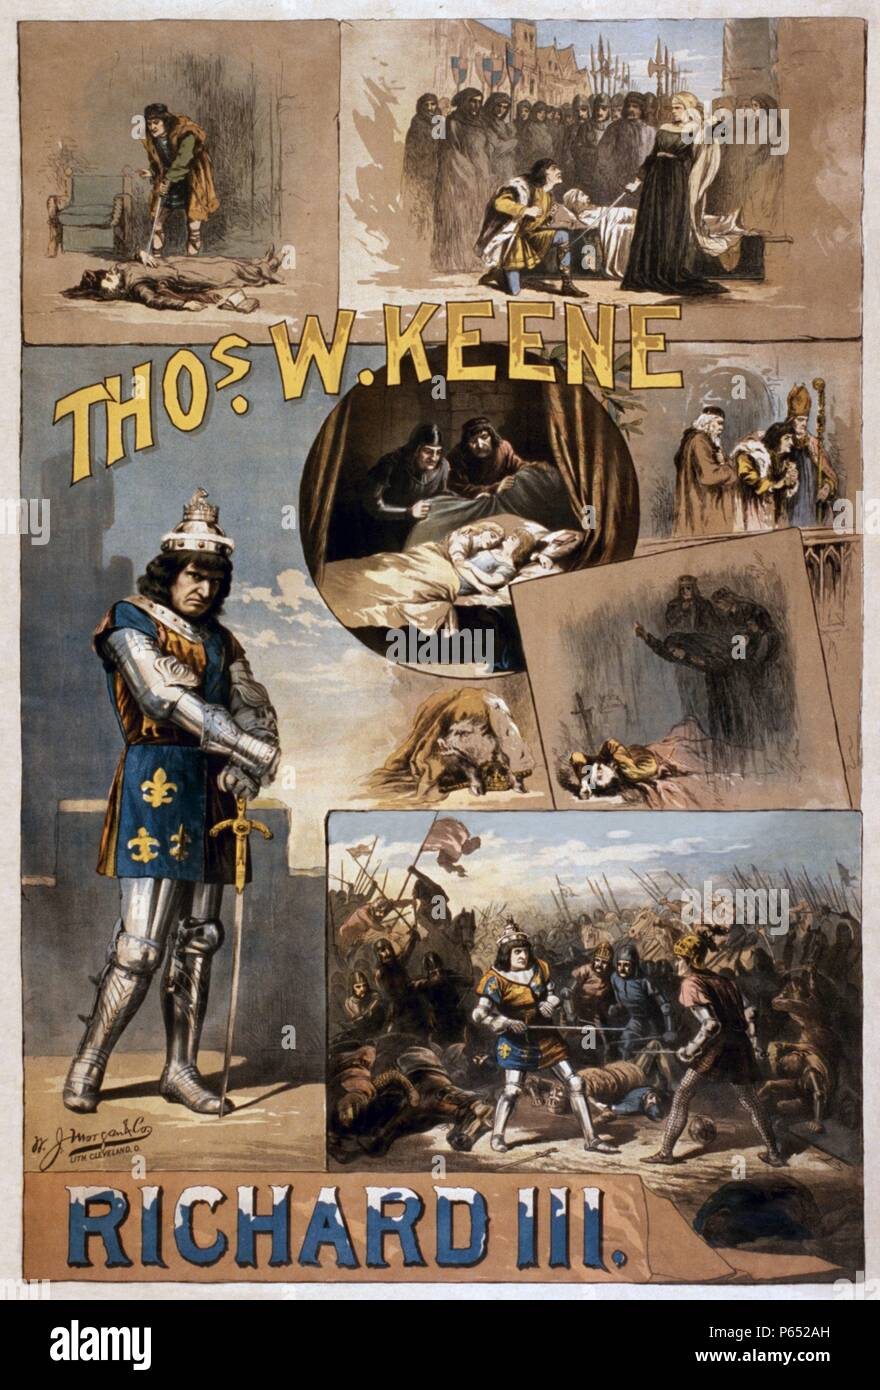 1884 poster advertising an American production of the play King Richard II by Shakespeare, showing many key scenes - Stock Image